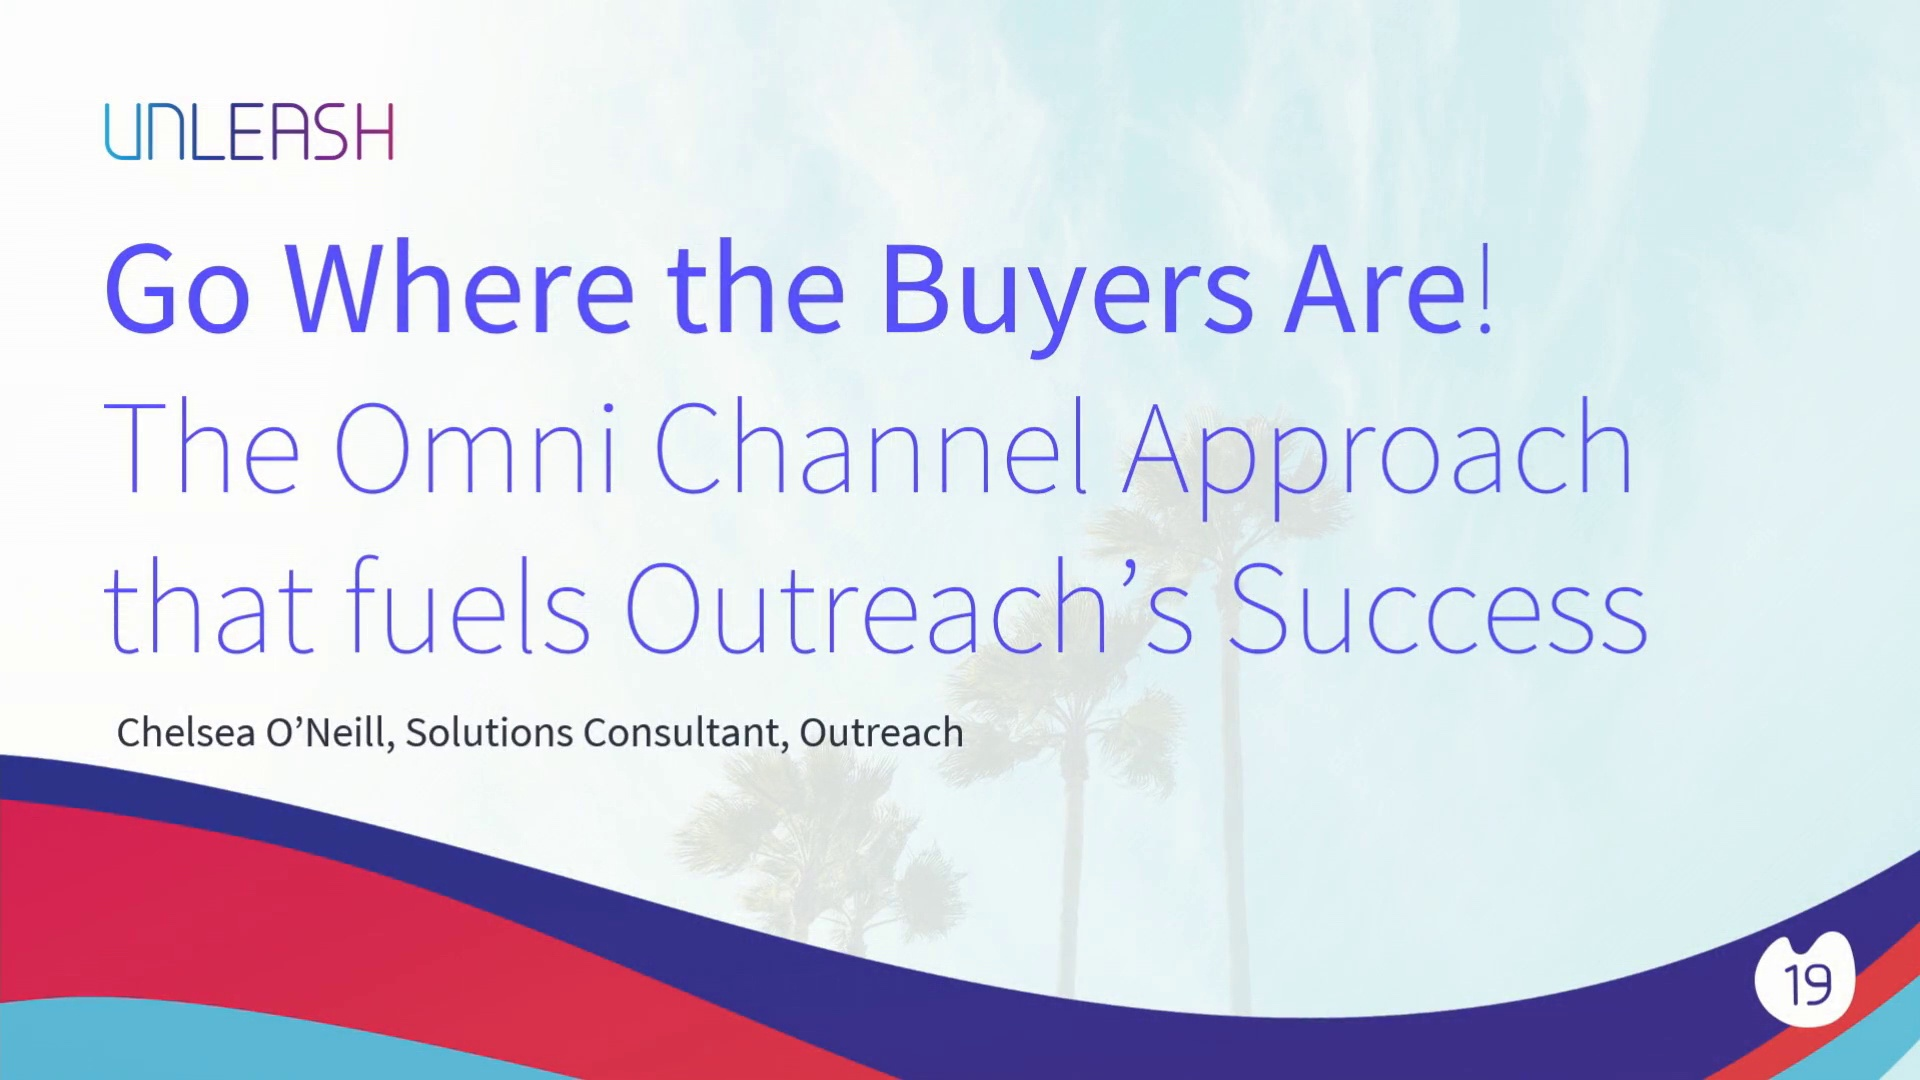 Go Where the Buyers Are, The Omni-Channel Approach that Fuels Outreach's Success - Chelsea O'Neill